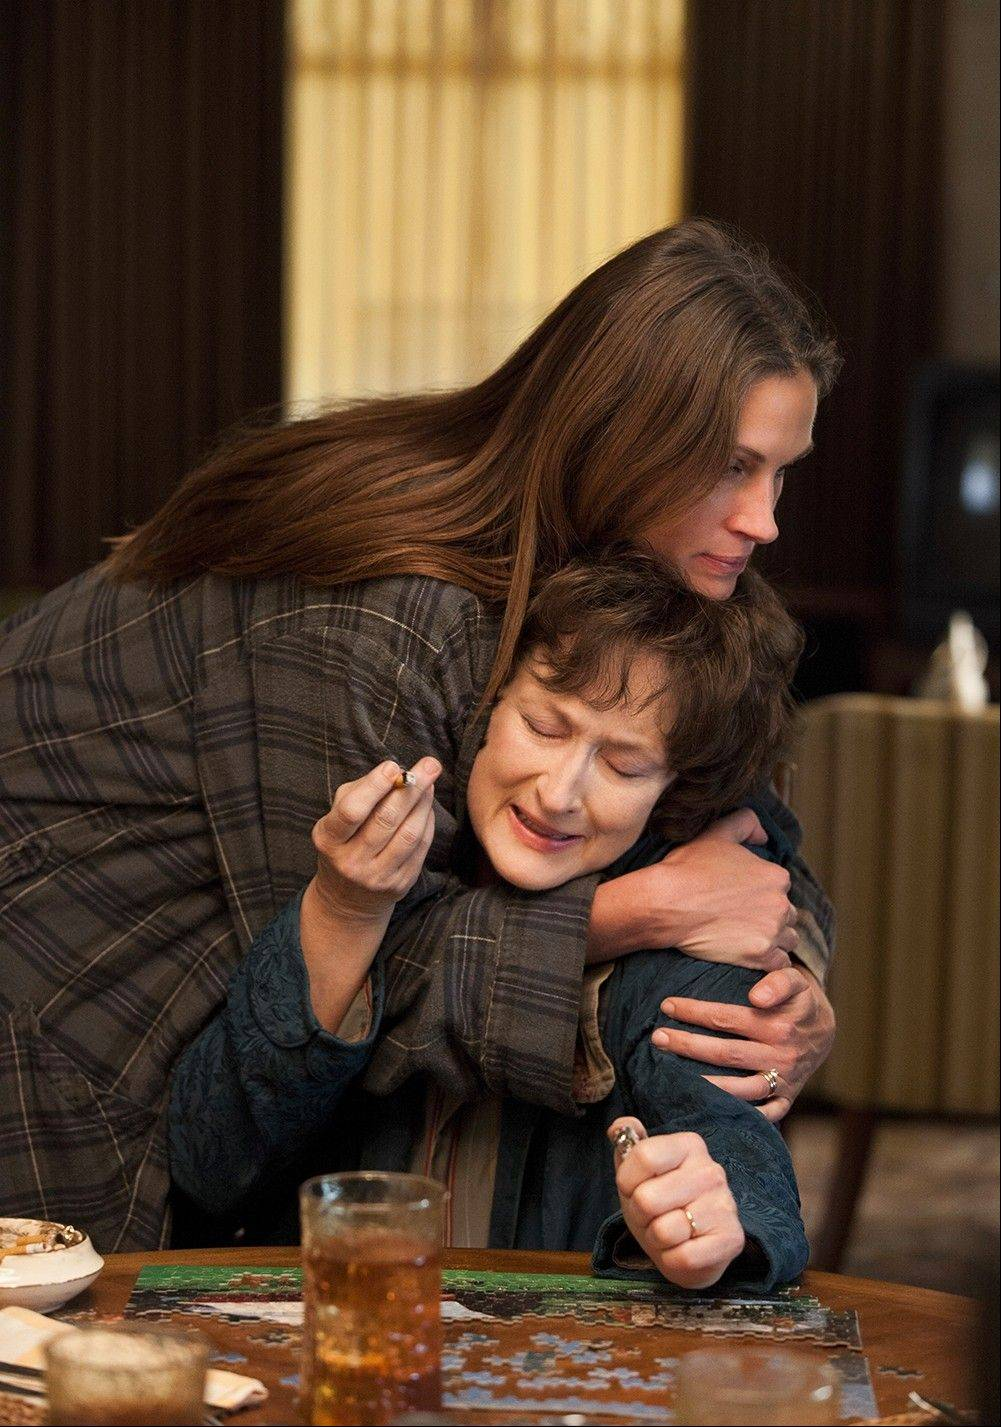 """August: Osage County"" starring Julia Roberts and Meryl Streep"